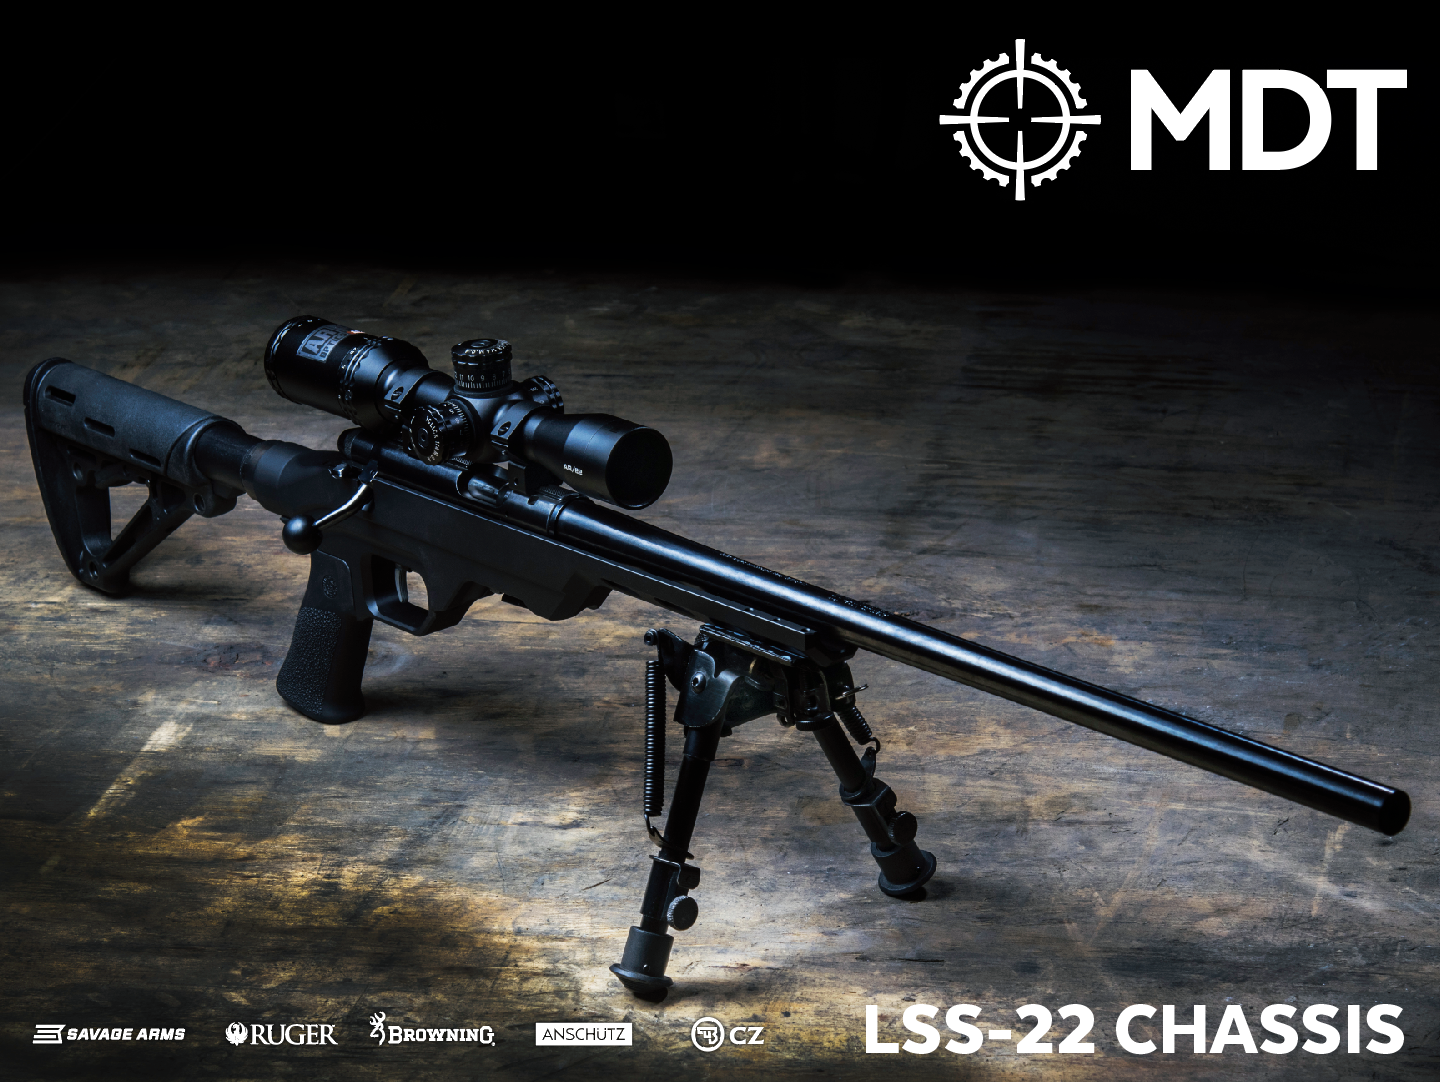 MDT LSS-22 Chassis in Black | Beaton Firearms